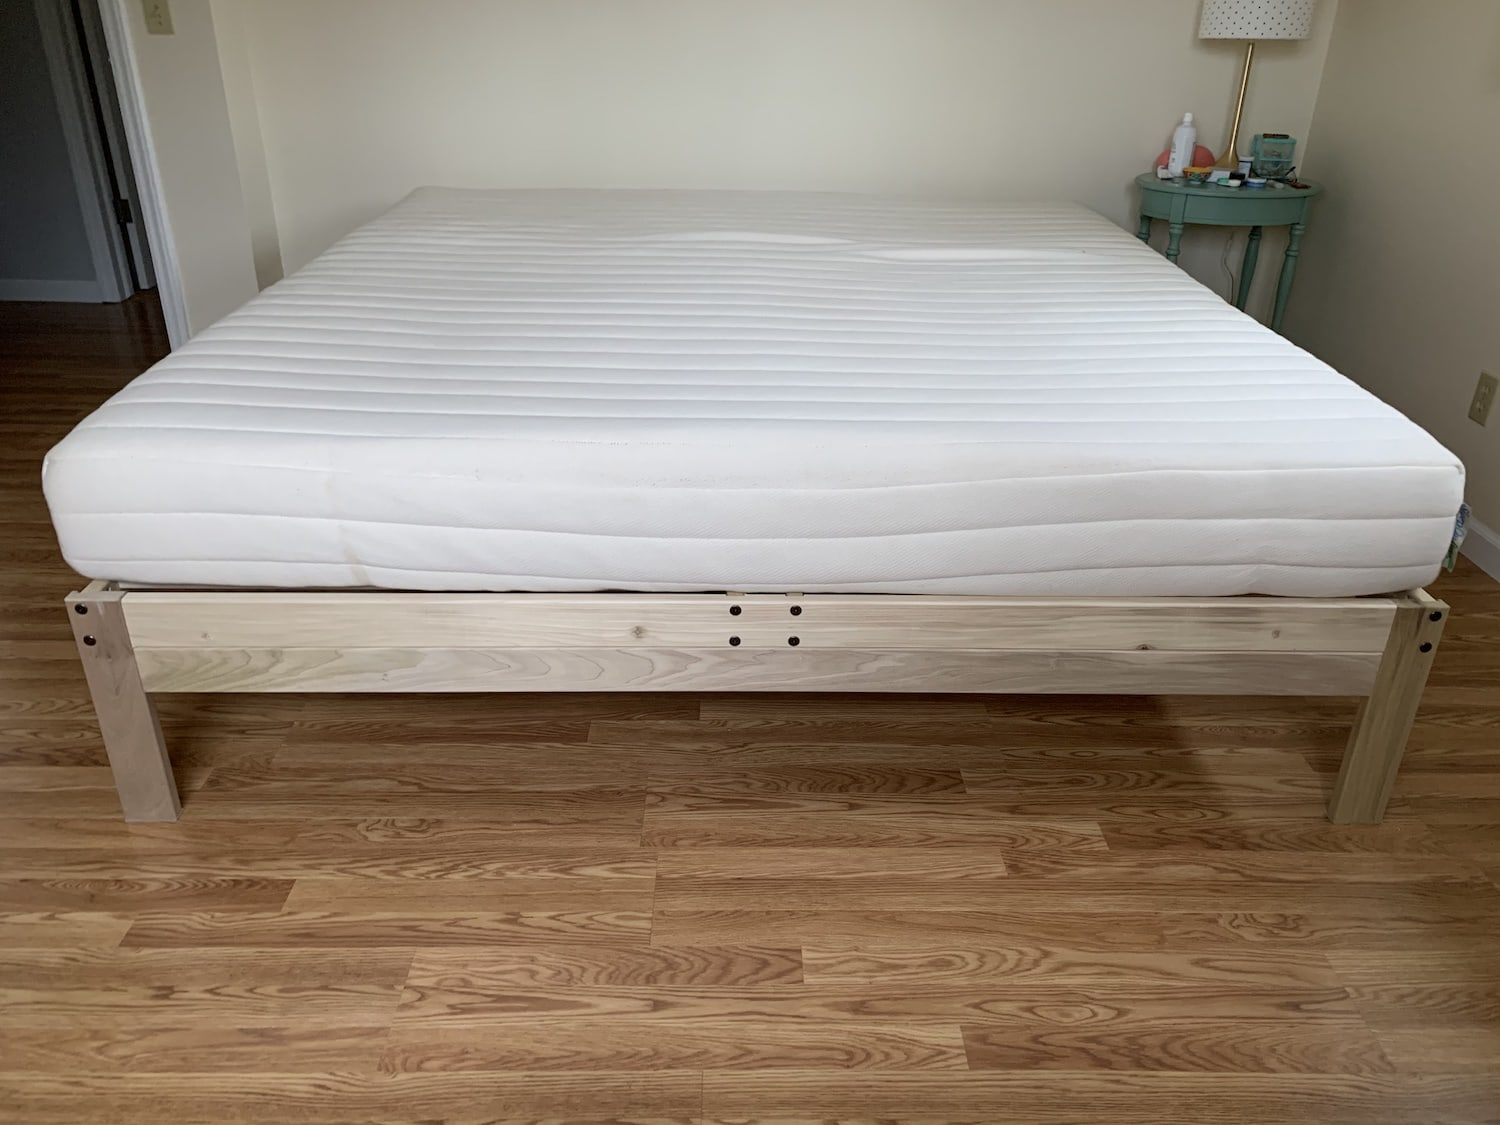 Natural Non Toxic Bed Frame Shopping Guide Get Green Be Well